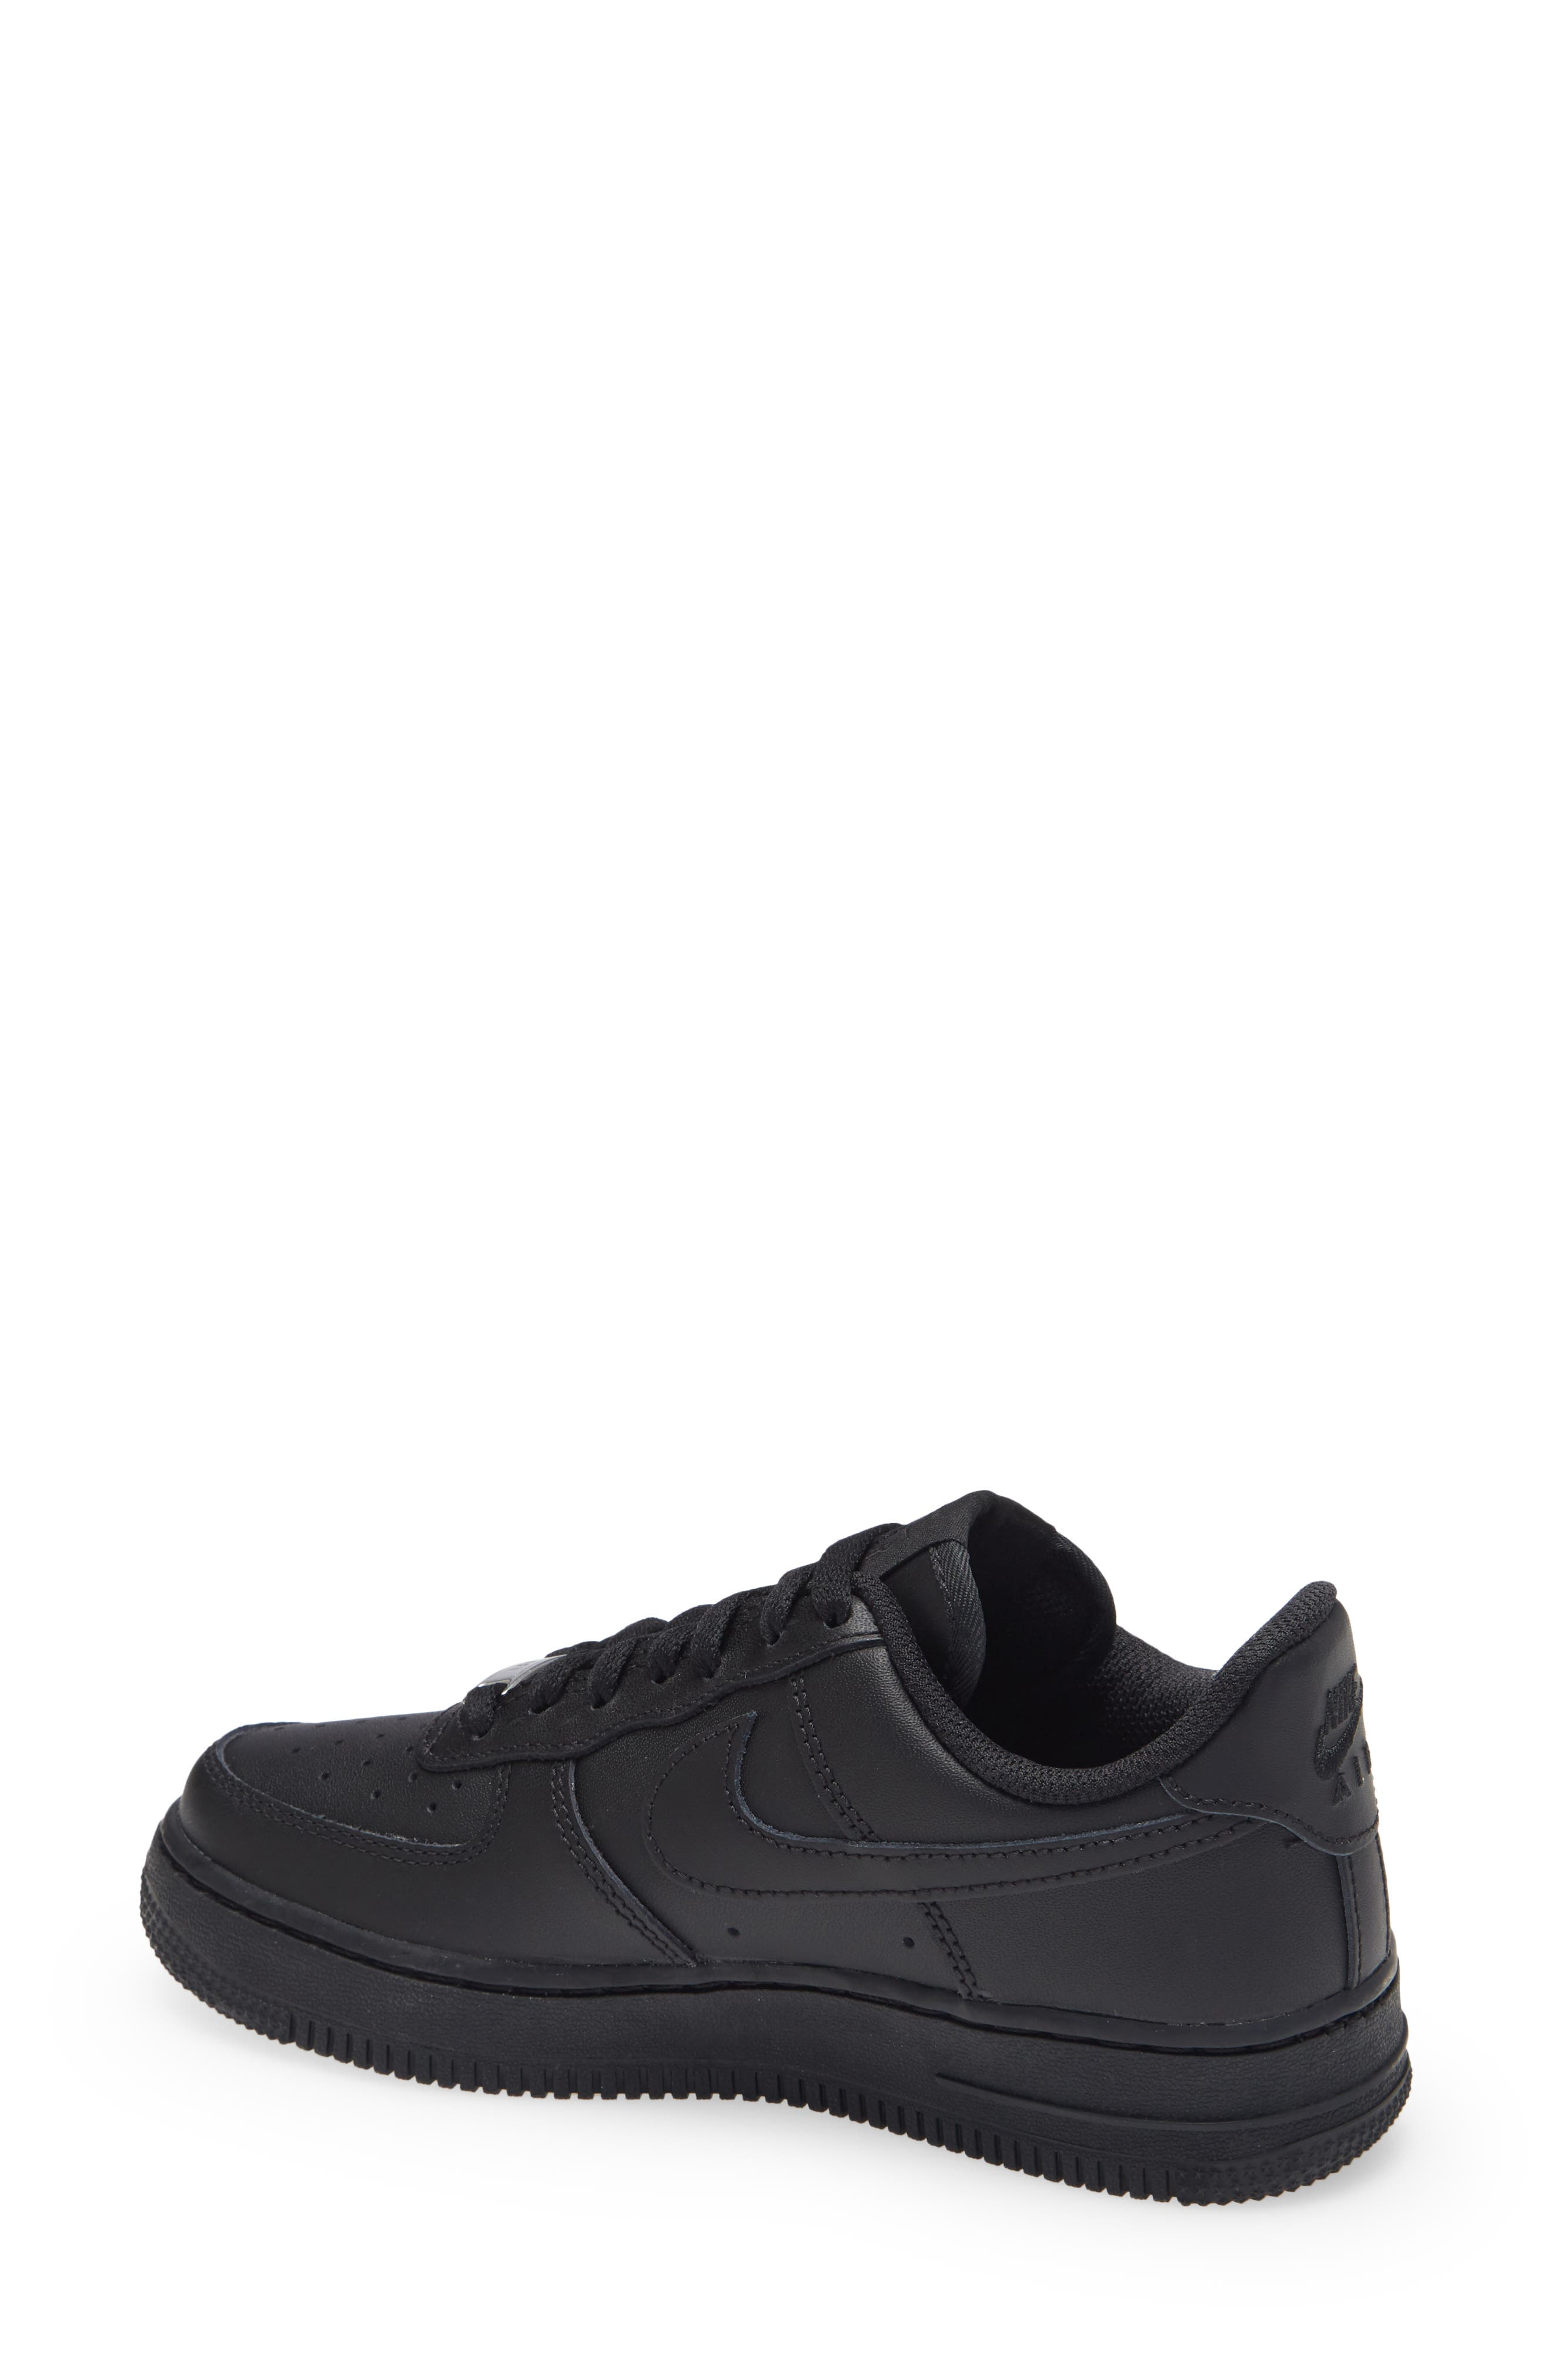 Air Force 1 Sneaker by Nike, available on linksynergy.com for $90 Emily Ratajkowski Shoes Exact Product